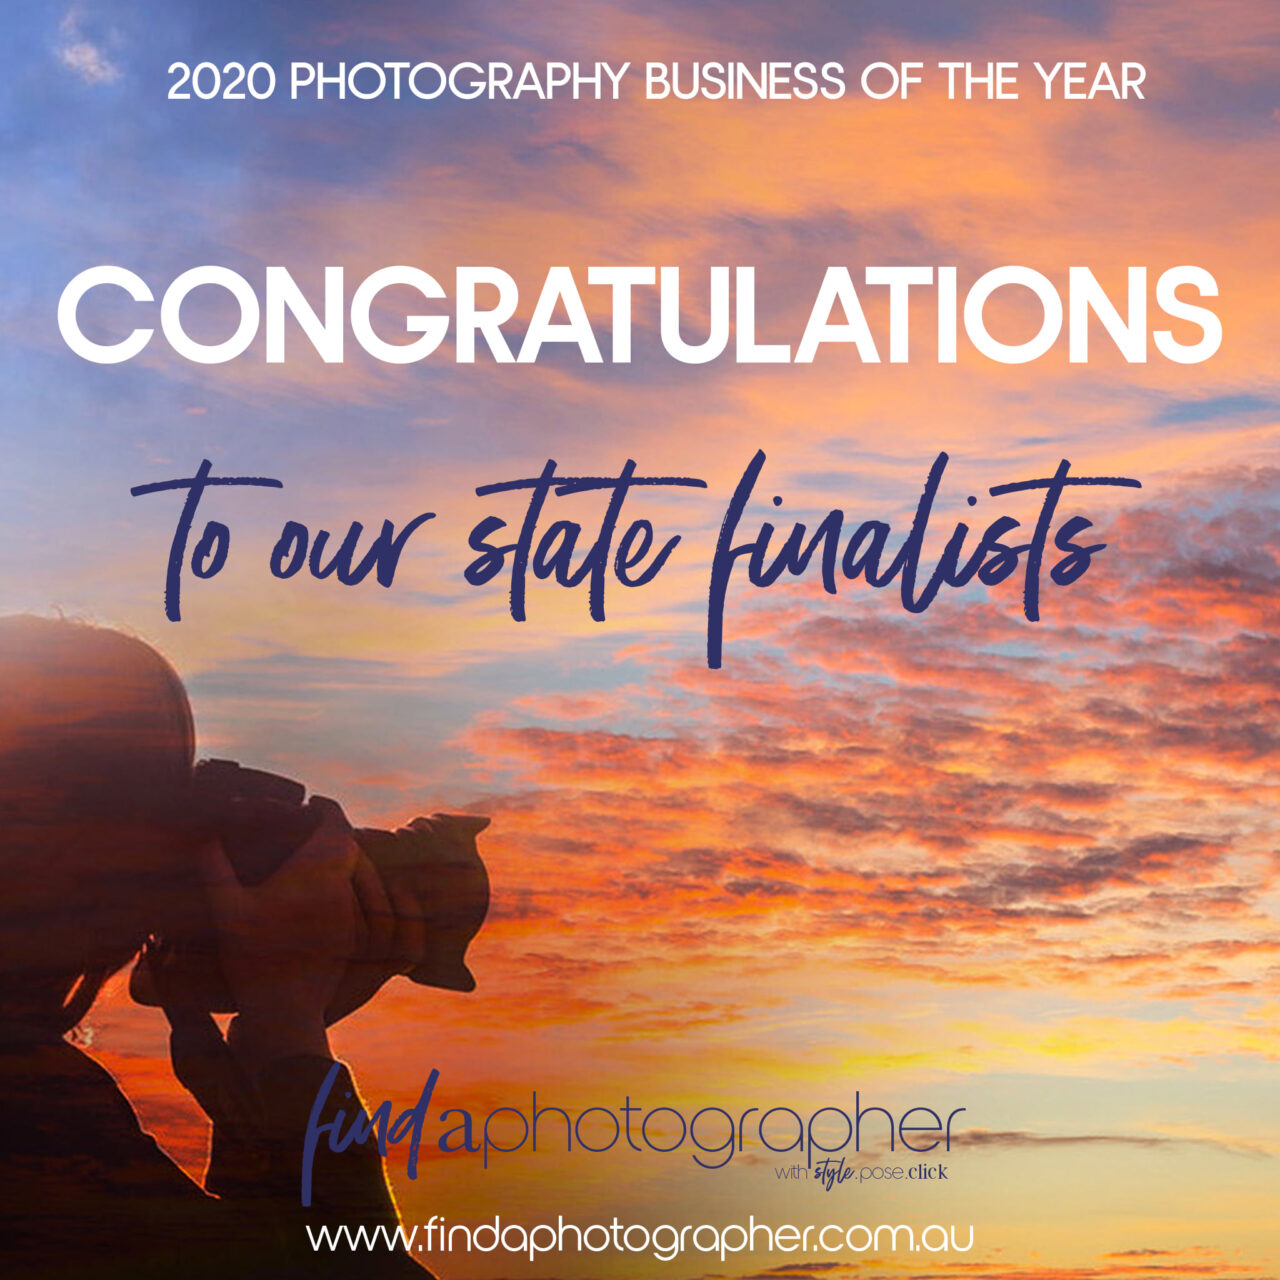 State Finalist for Photography Business of the Year